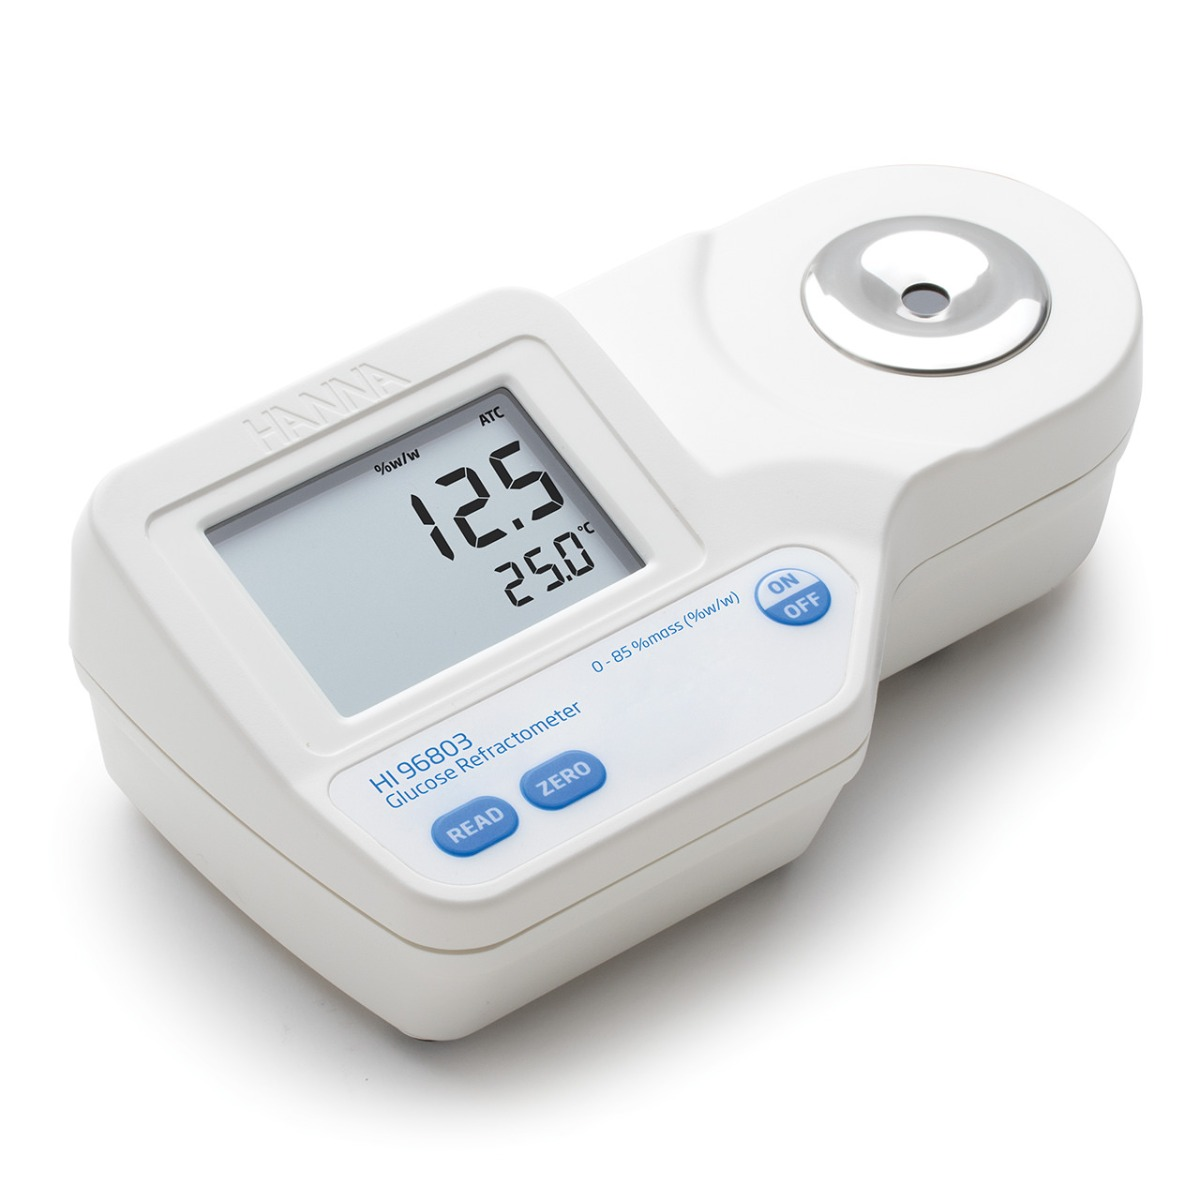 Digital Refractometer for % Glucose by Weight Analysis - HI96803